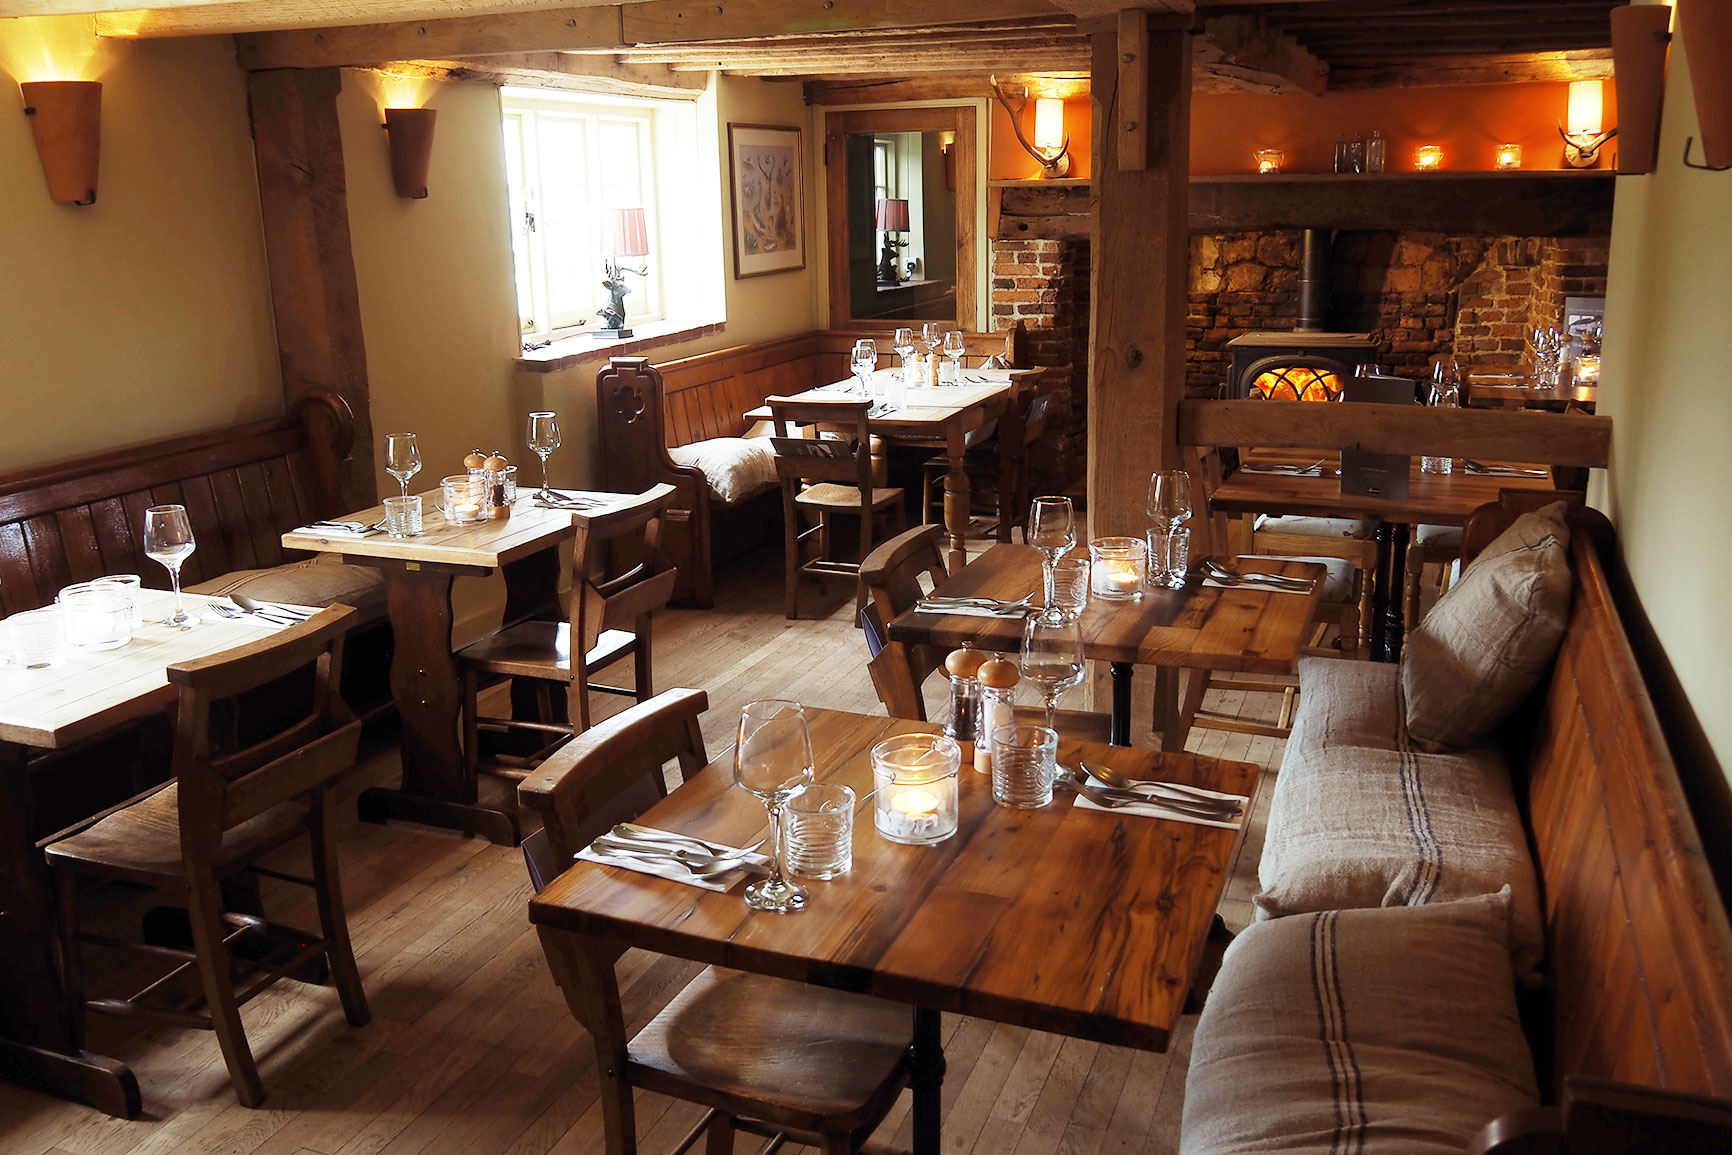 Foresters Arms Dinning Room after the upgrade